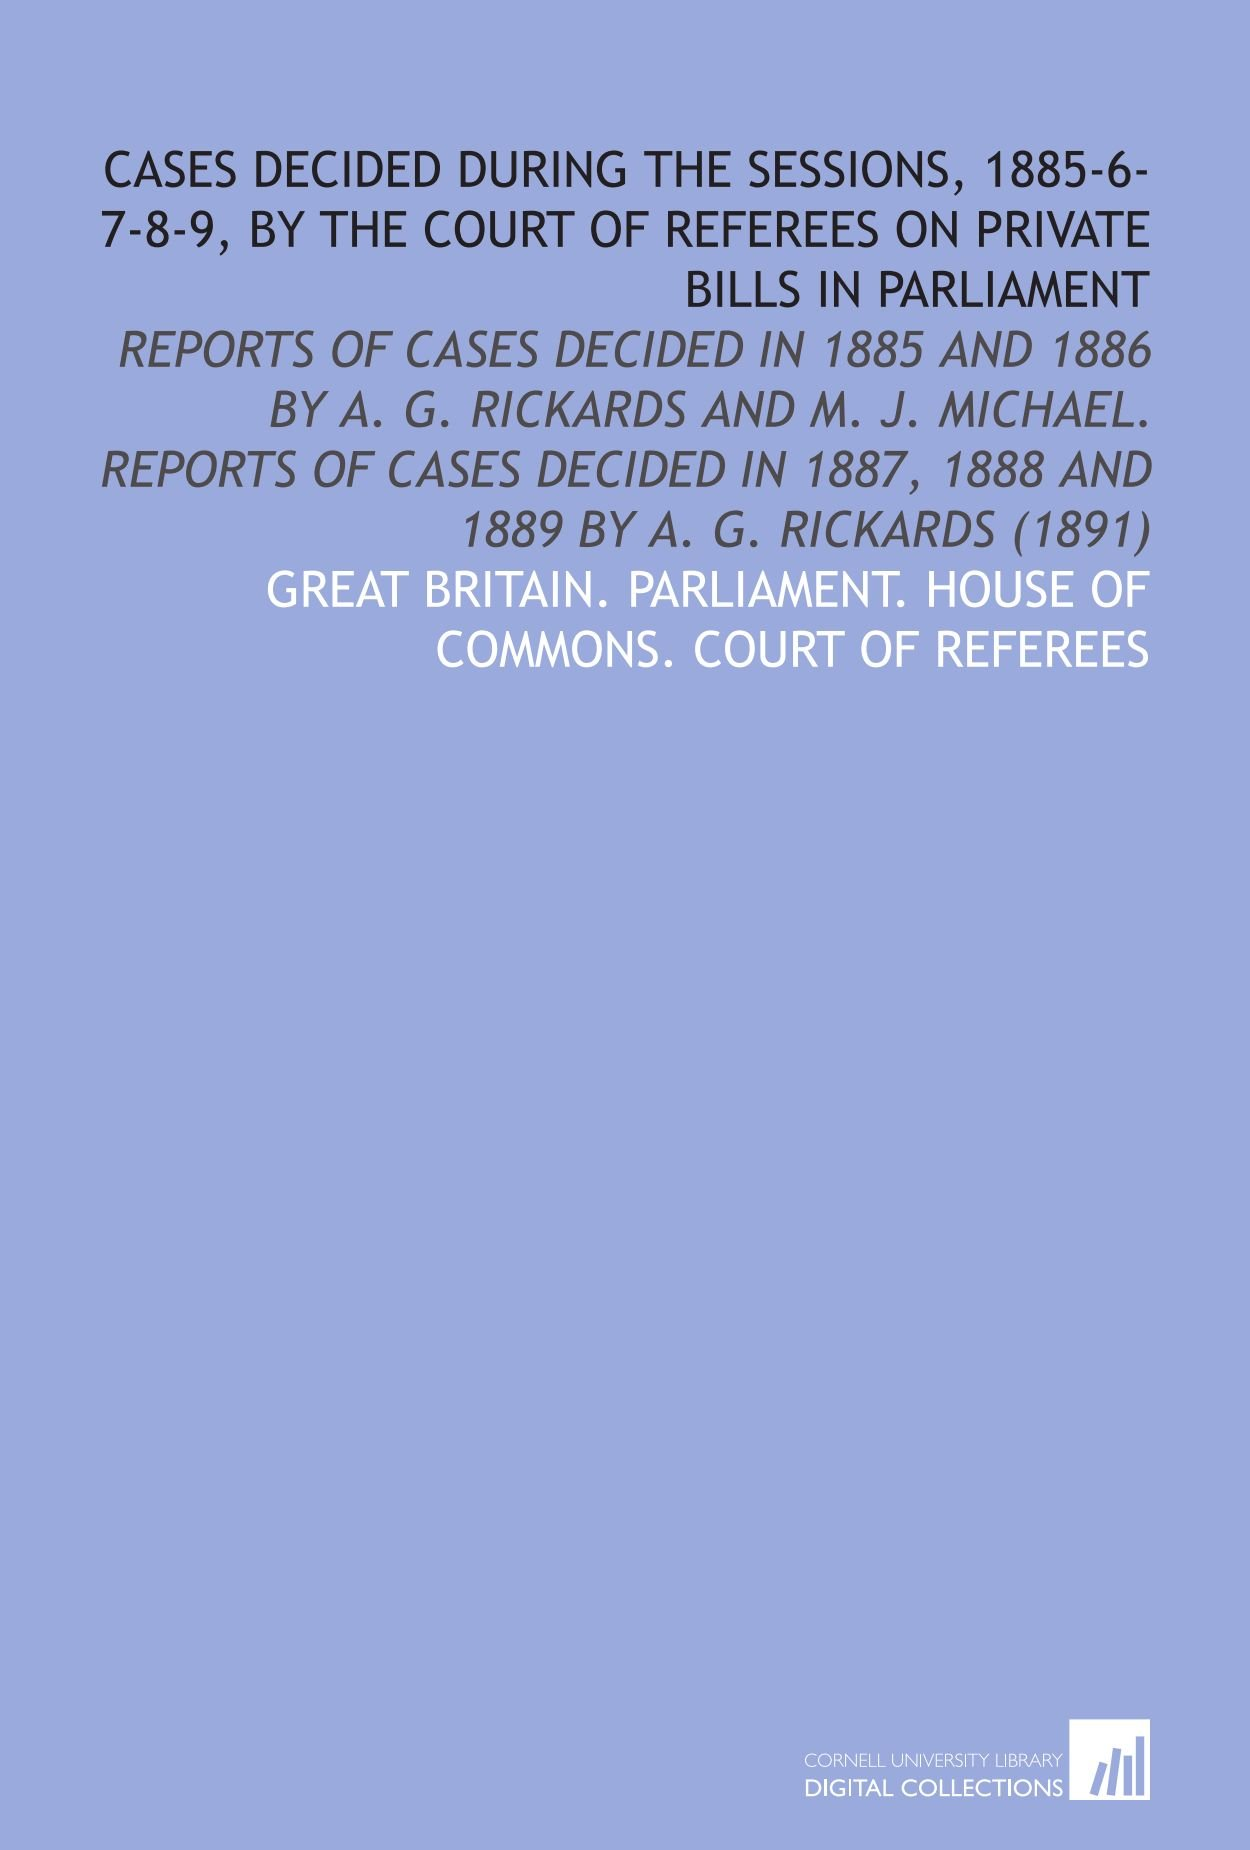 Read Online Cases Decided During the Sessions, 1885-6-7-8-9, by the Court of Referees on Private Bills in Parliament: Reports of Cases Decided in 1885 and 1886 by ... 1887, 1888 and 1889 by a. G. Rickards (1891) pdf